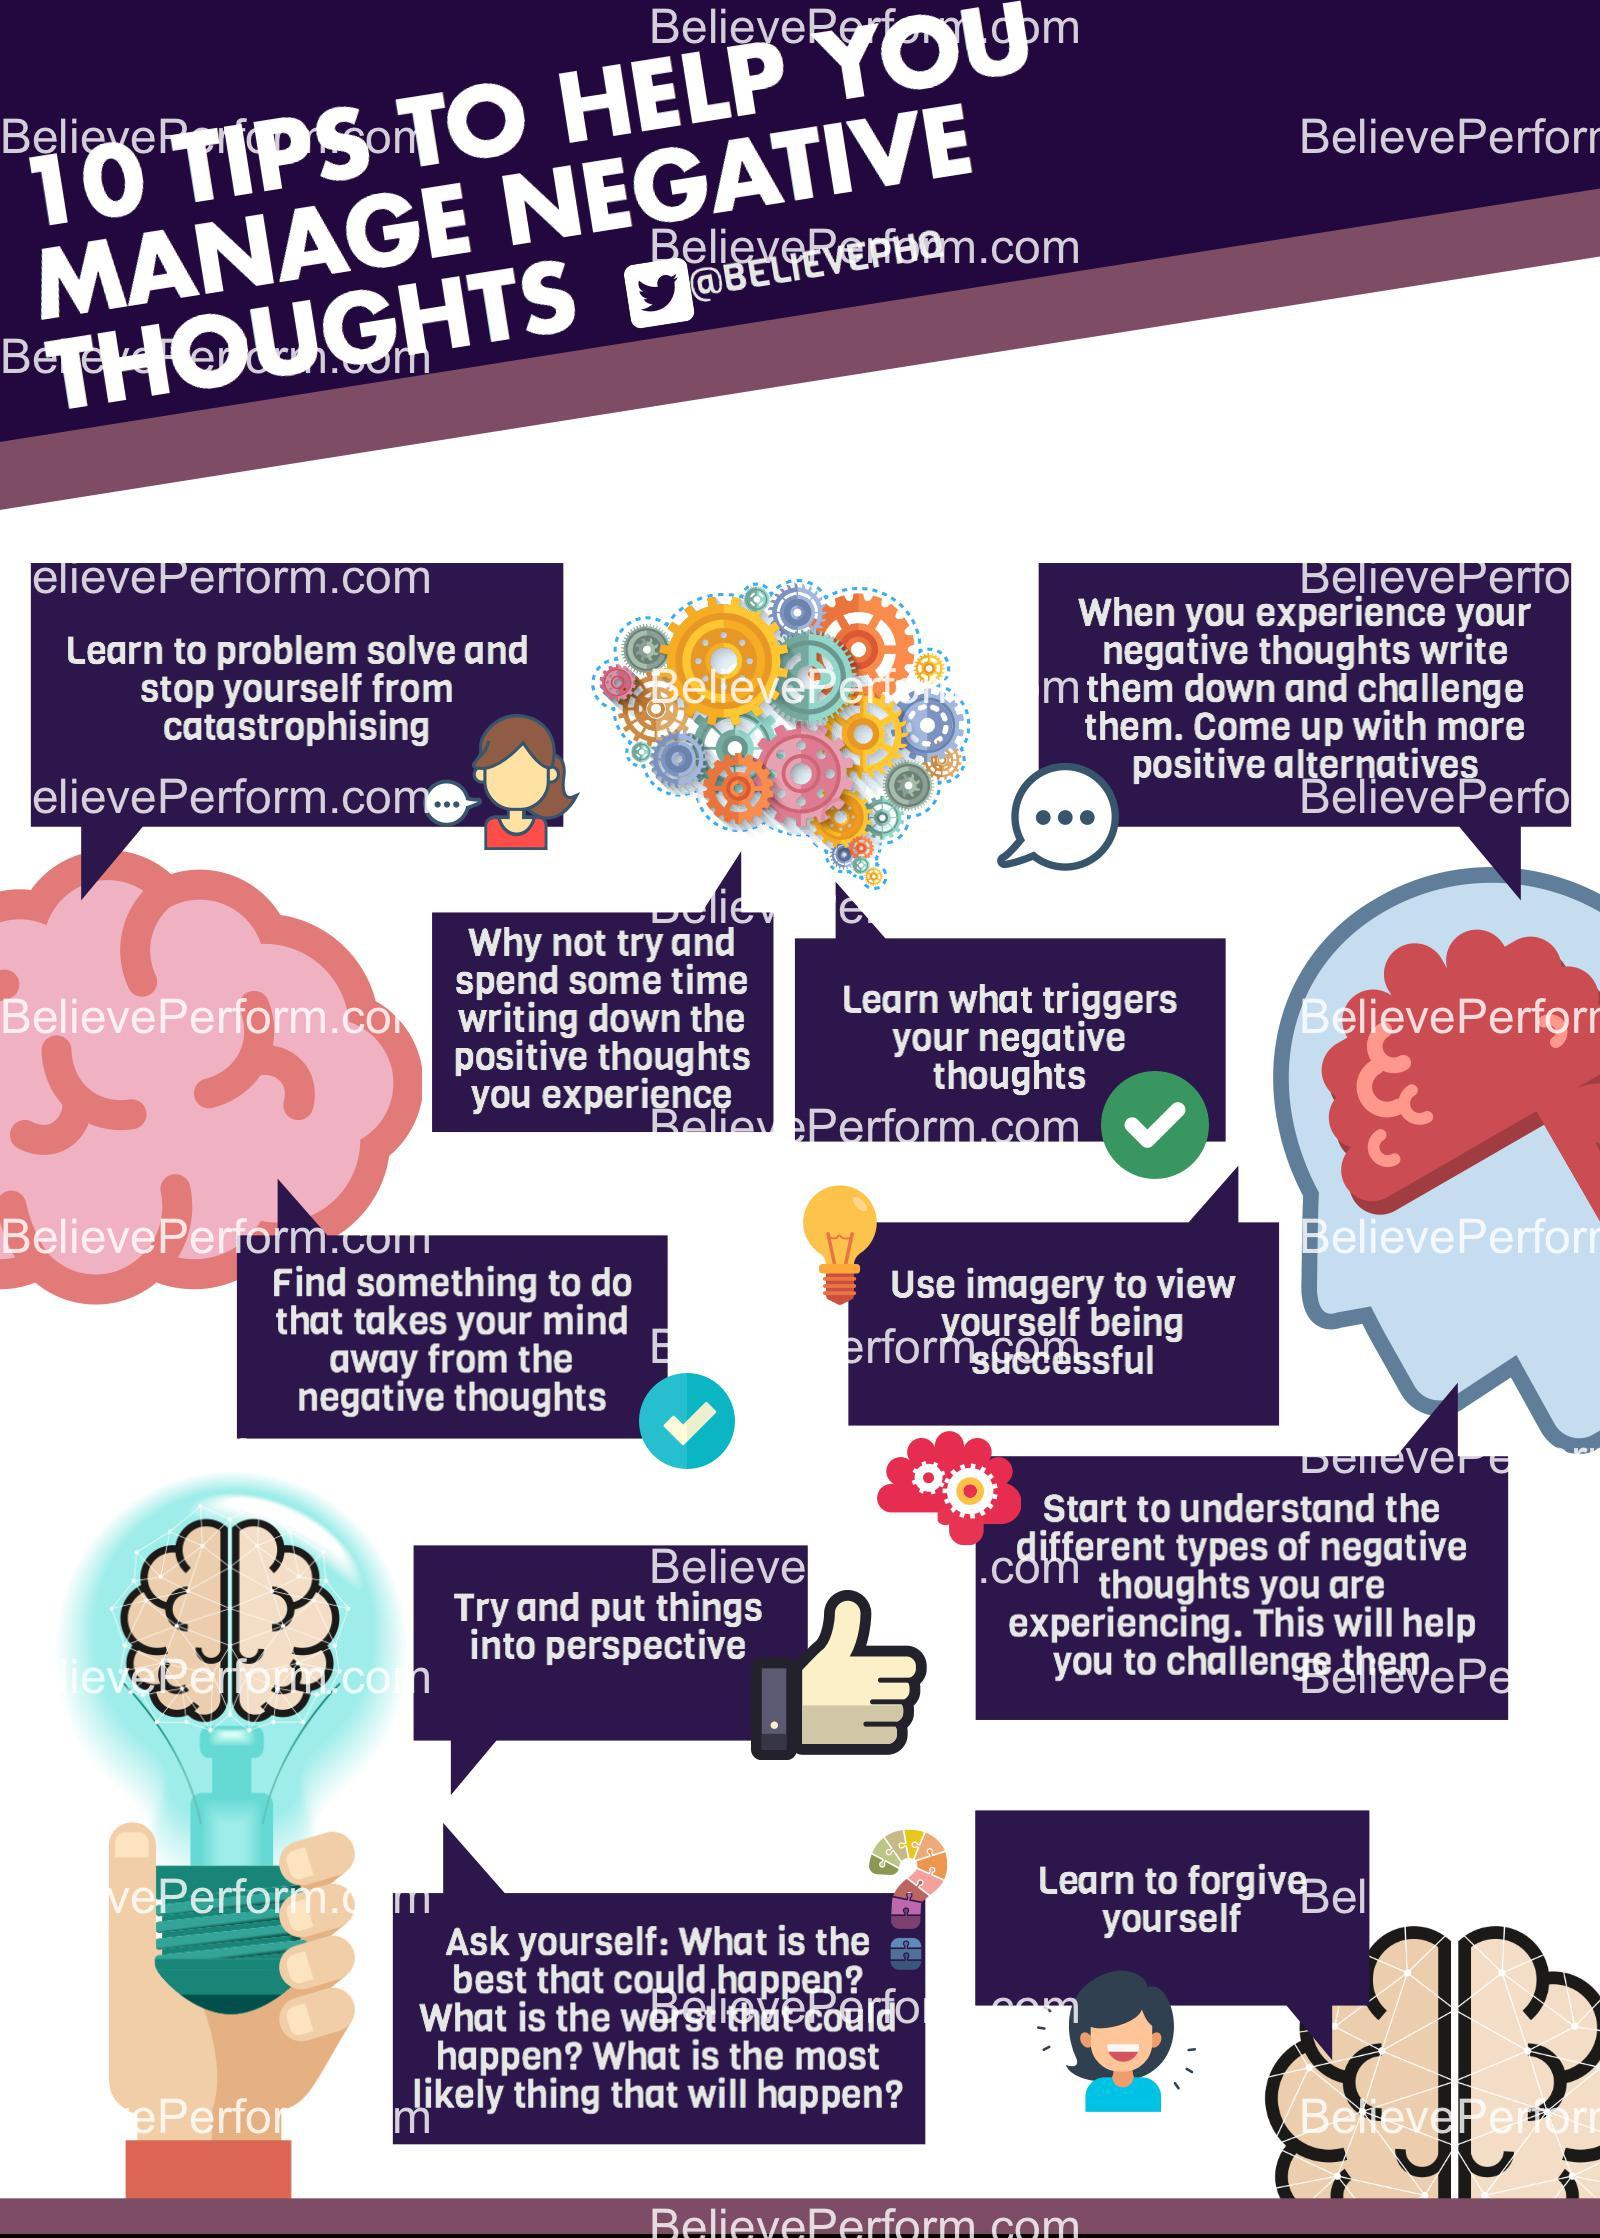 10 tips to help you manage negative thoughts